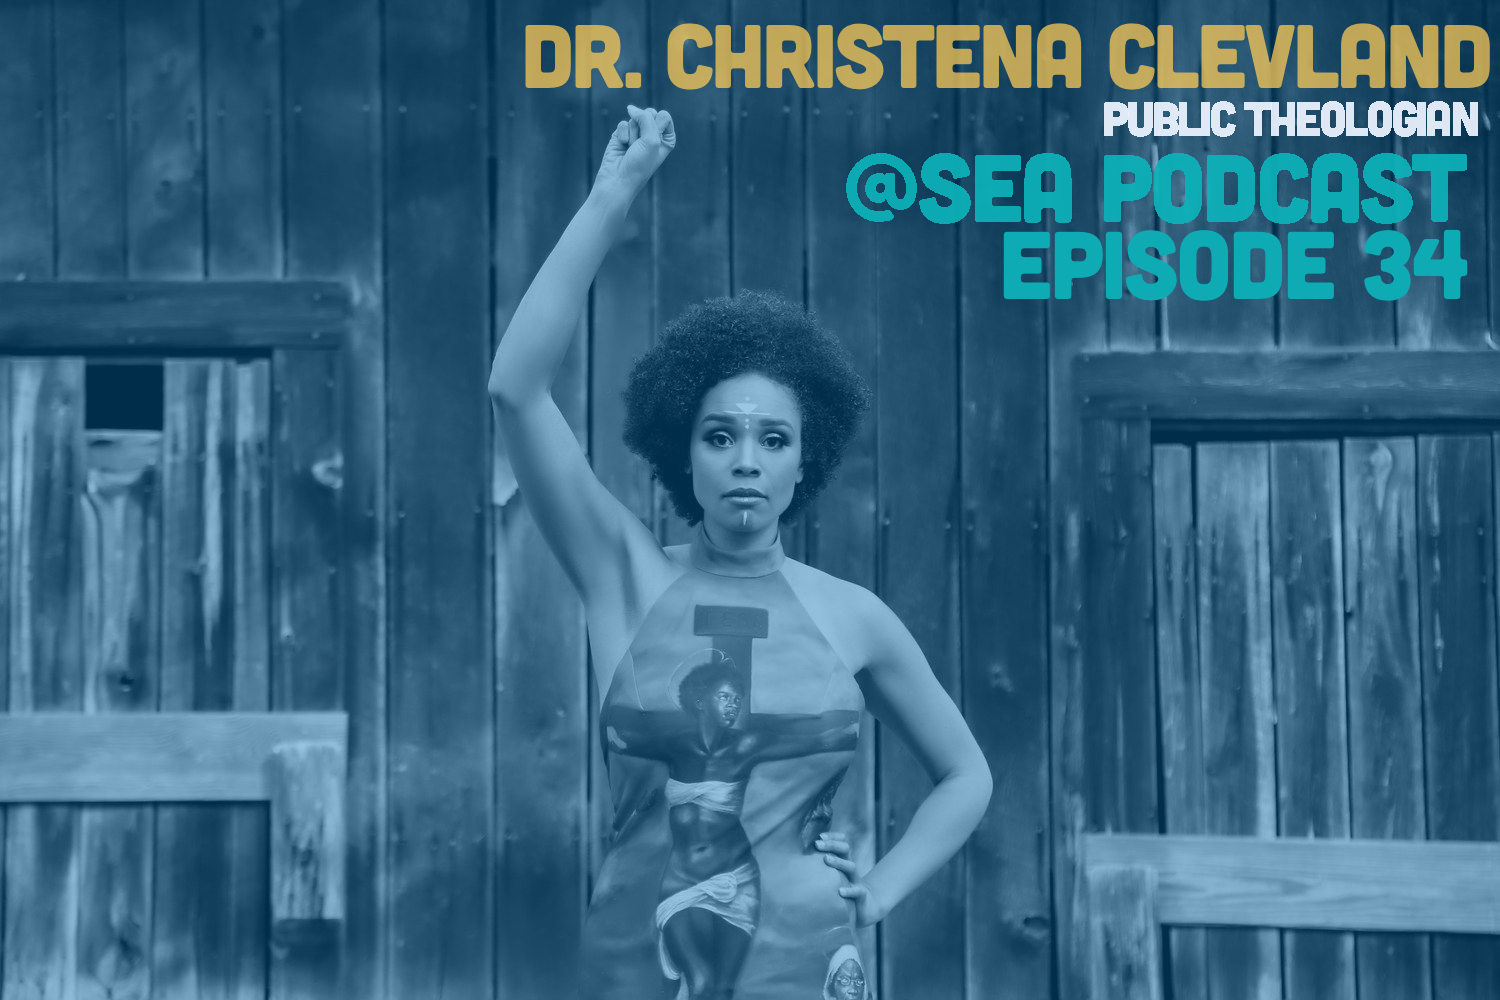 @ Sea Podcast #34: Dr. Christena Cleveland